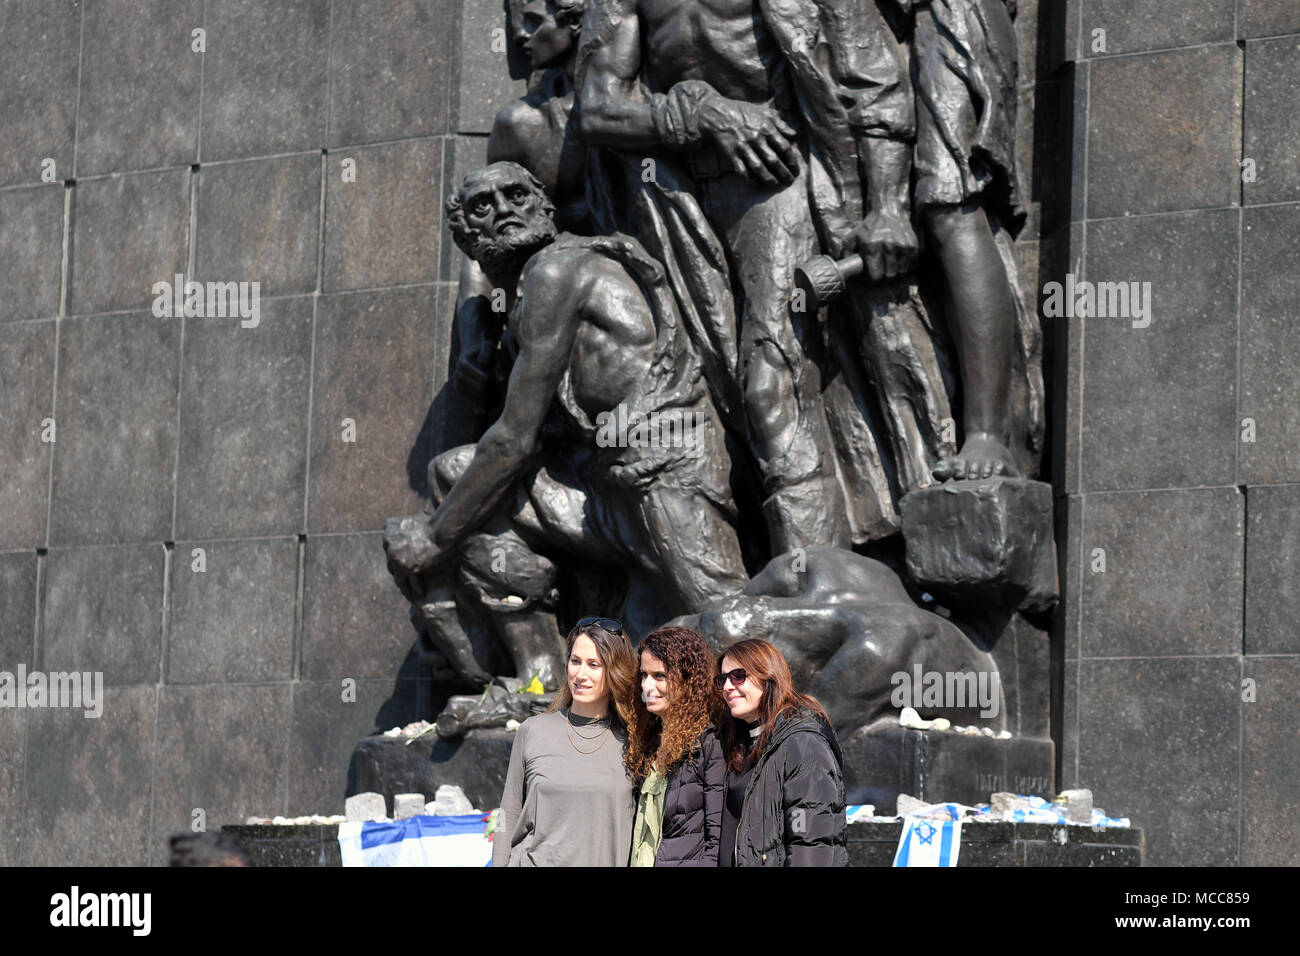 Warsaw Poland Visitors at the Monument to the Ghetto Heroes of the Warsaw Ghetto Uprising Stock Photo